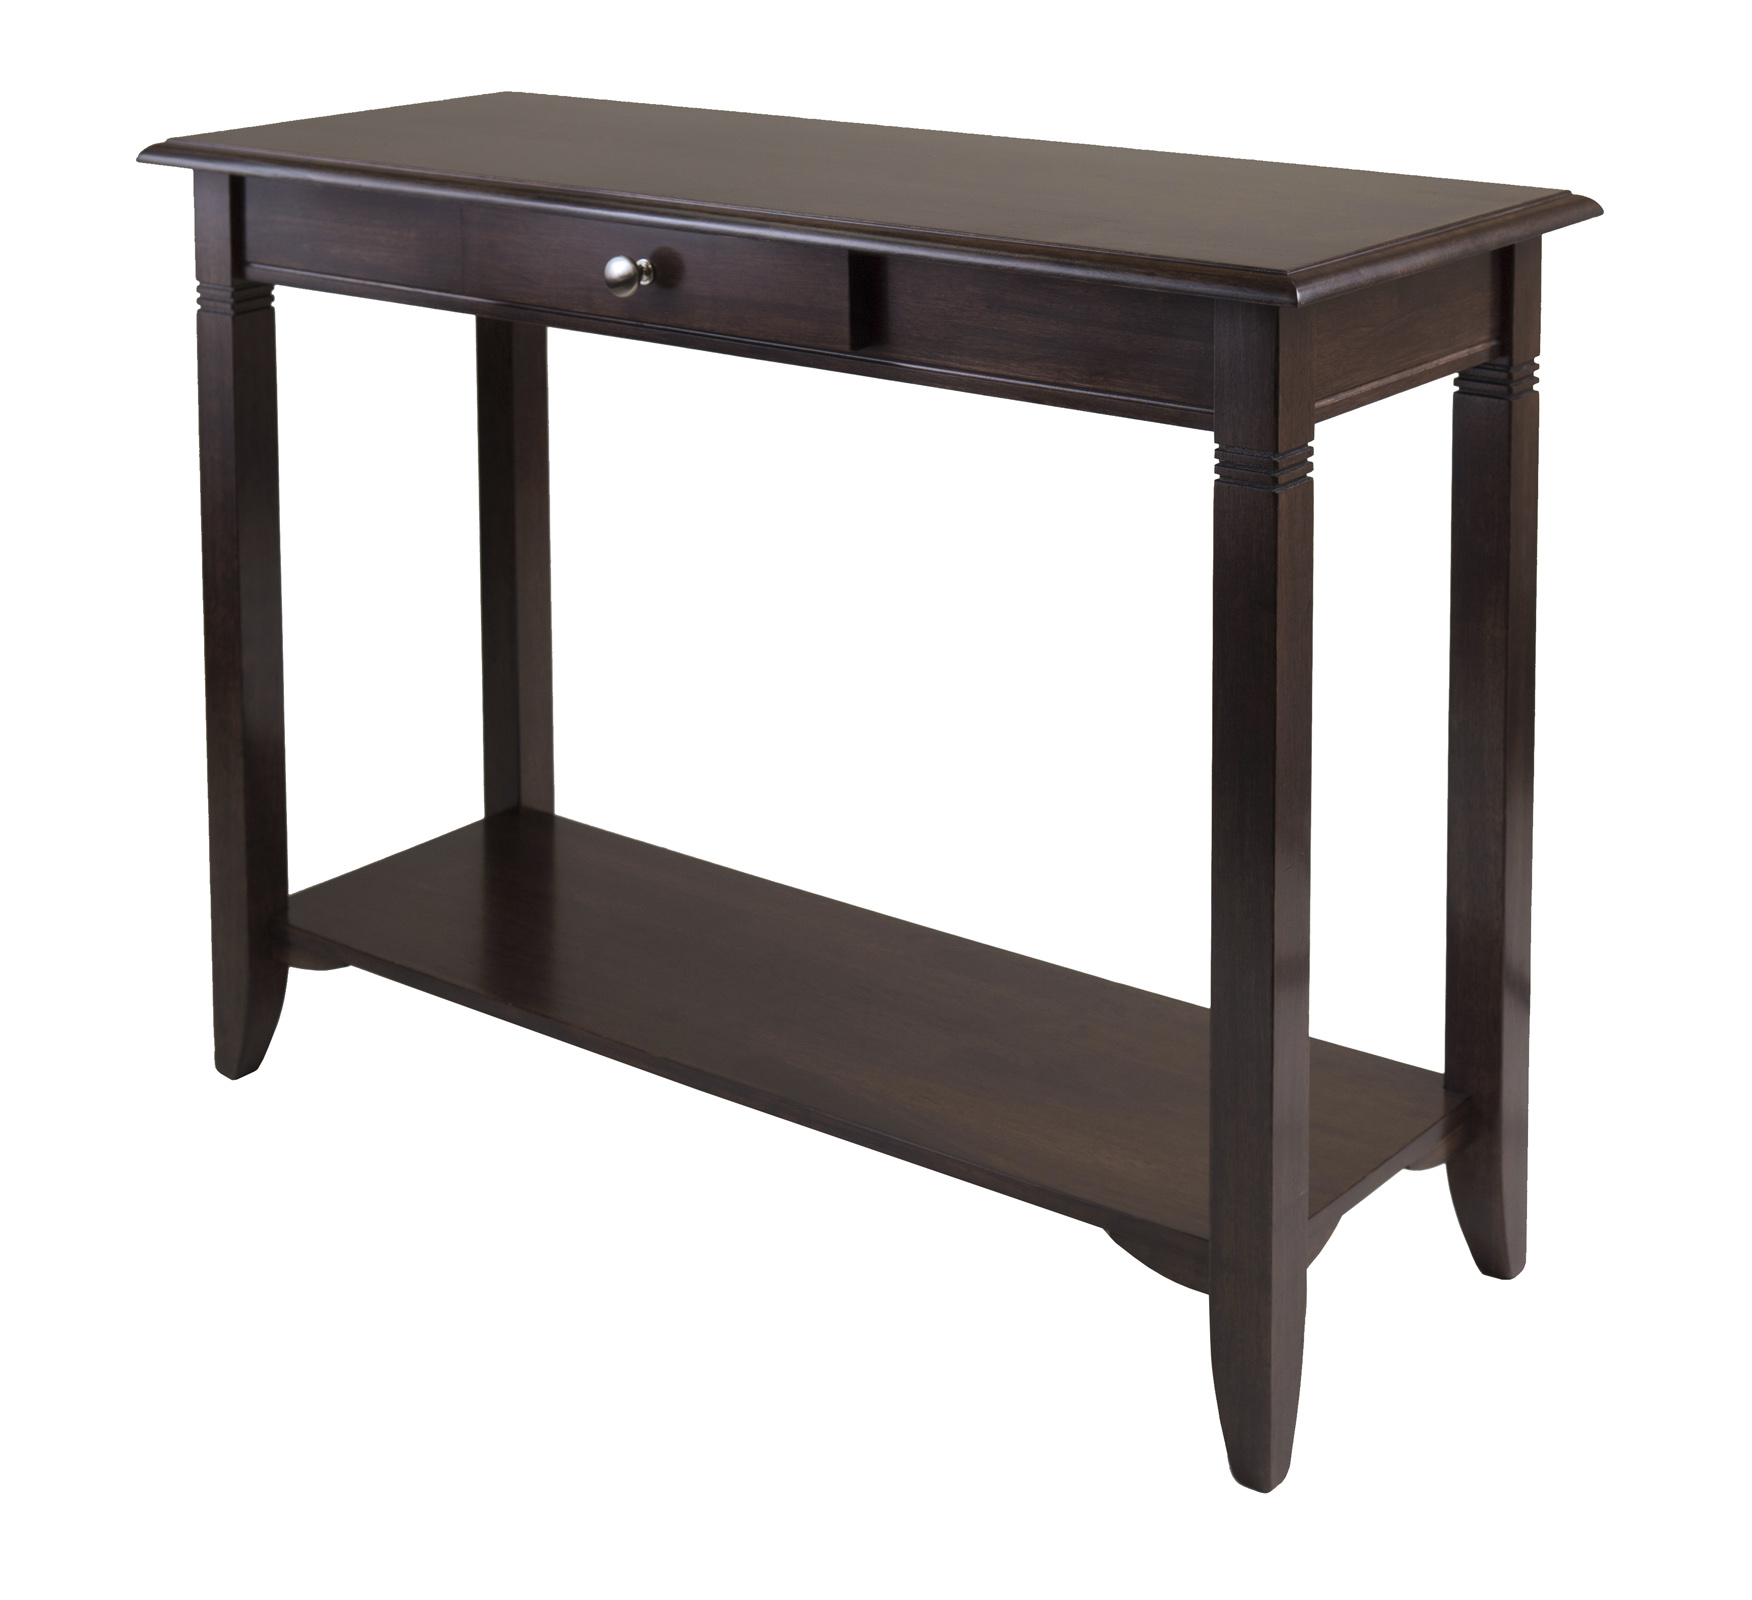 Winsome wood nolan console table with drawer by oj for Table console